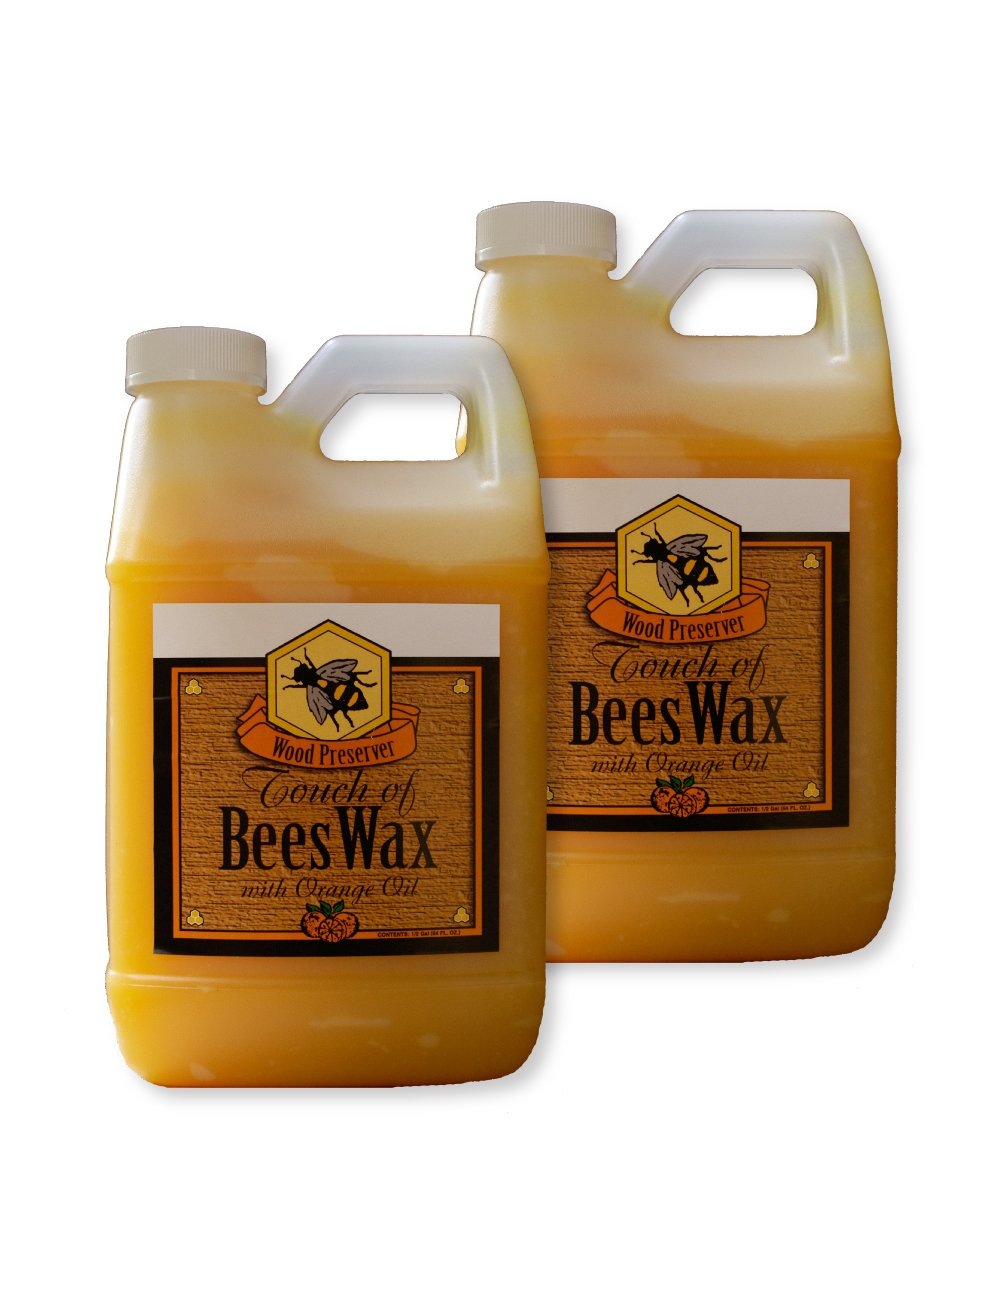 Beeswax, Wood Preserver, Dry Wood, Wax for Wood, Wood Polish, 64oz 1/2 Gallon Set of 2 by Touch Of Oranges